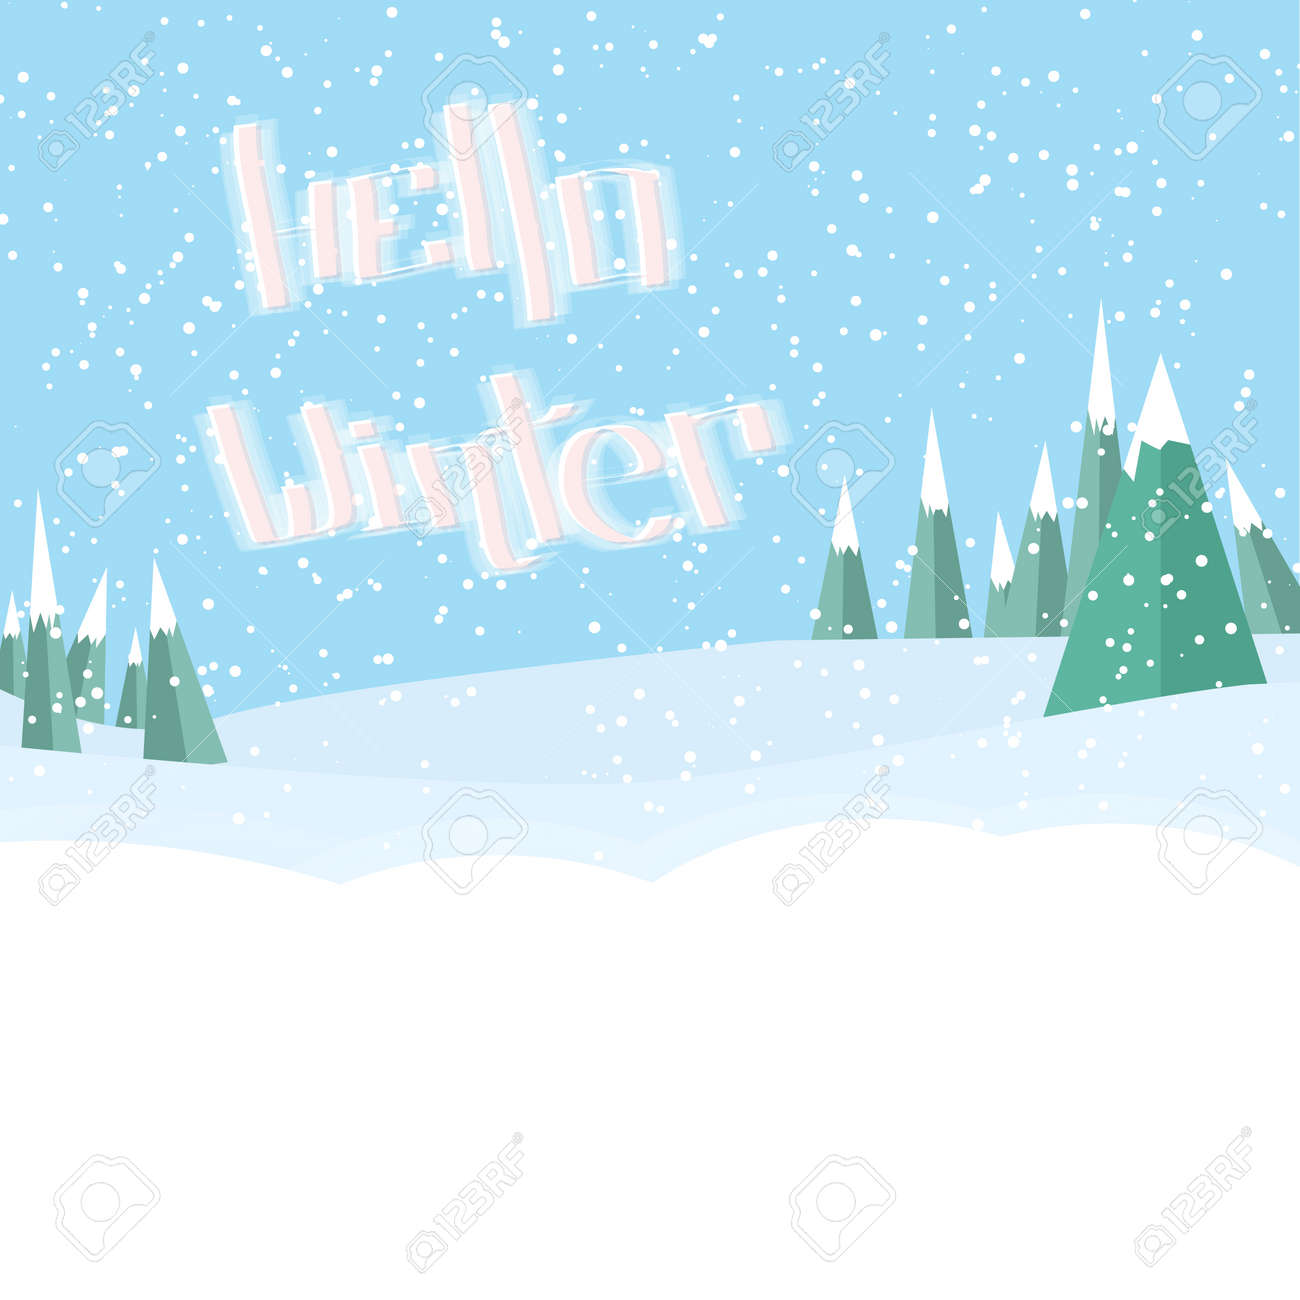 Snowing Christmas Tree.Hello Winter Lettering Winter Snowdrift Landscape Snowing Christmas